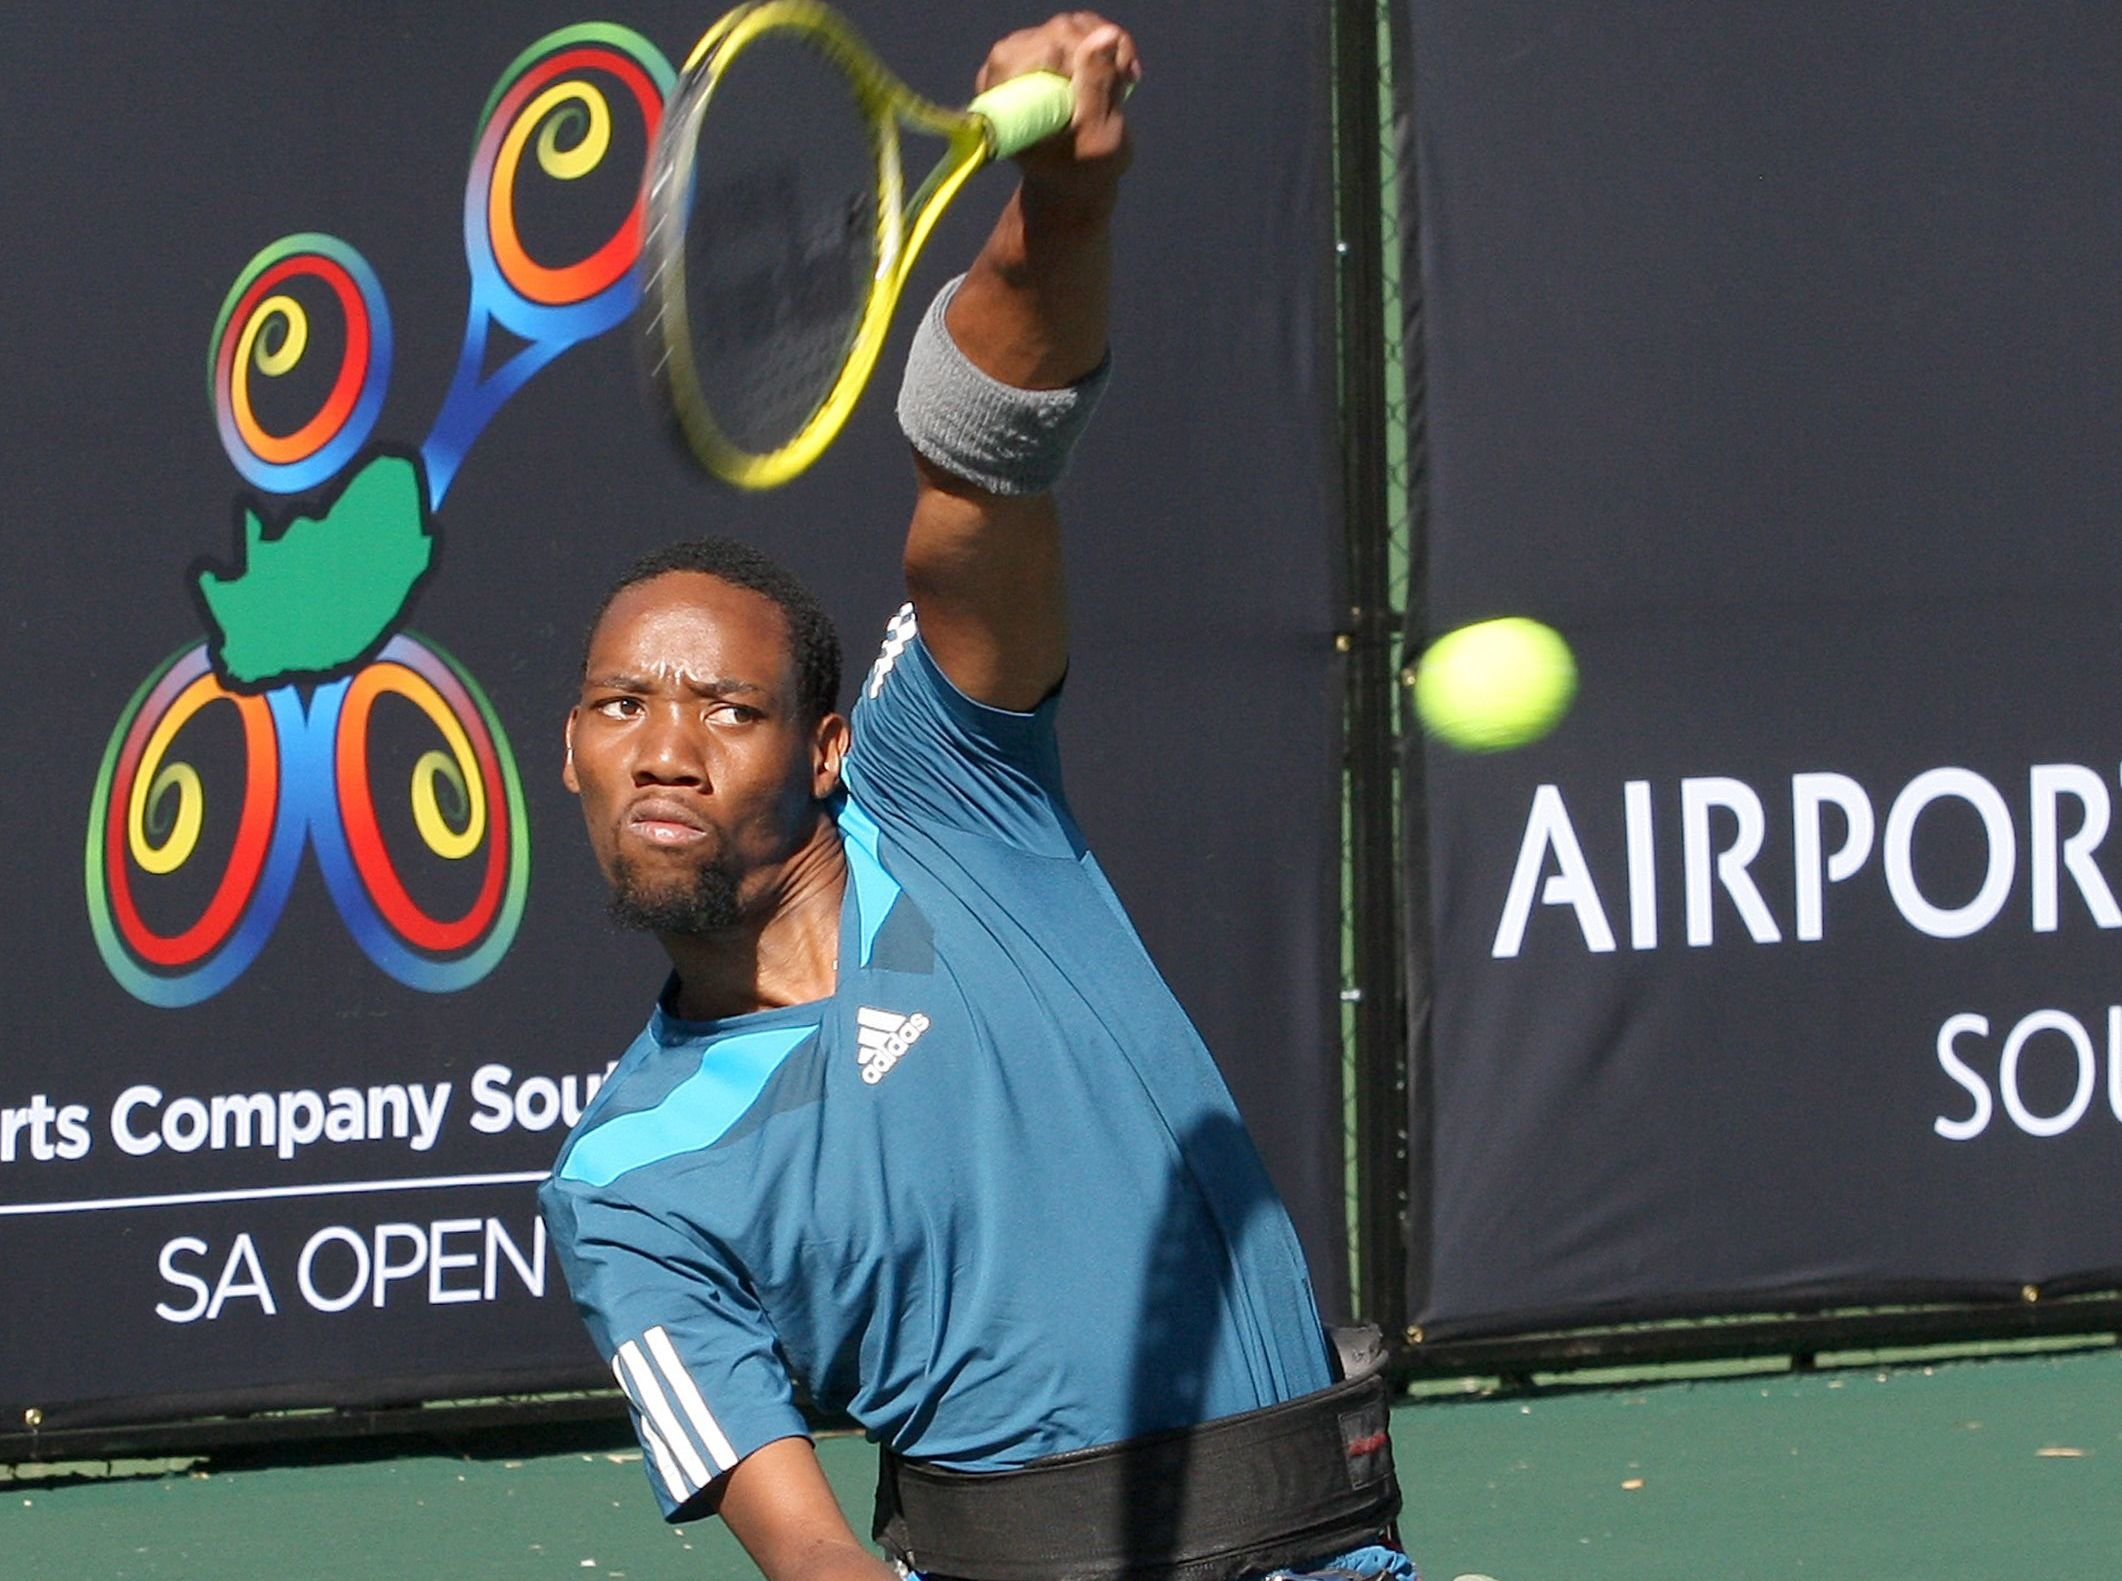 Montjane extra motivated for SA Open success